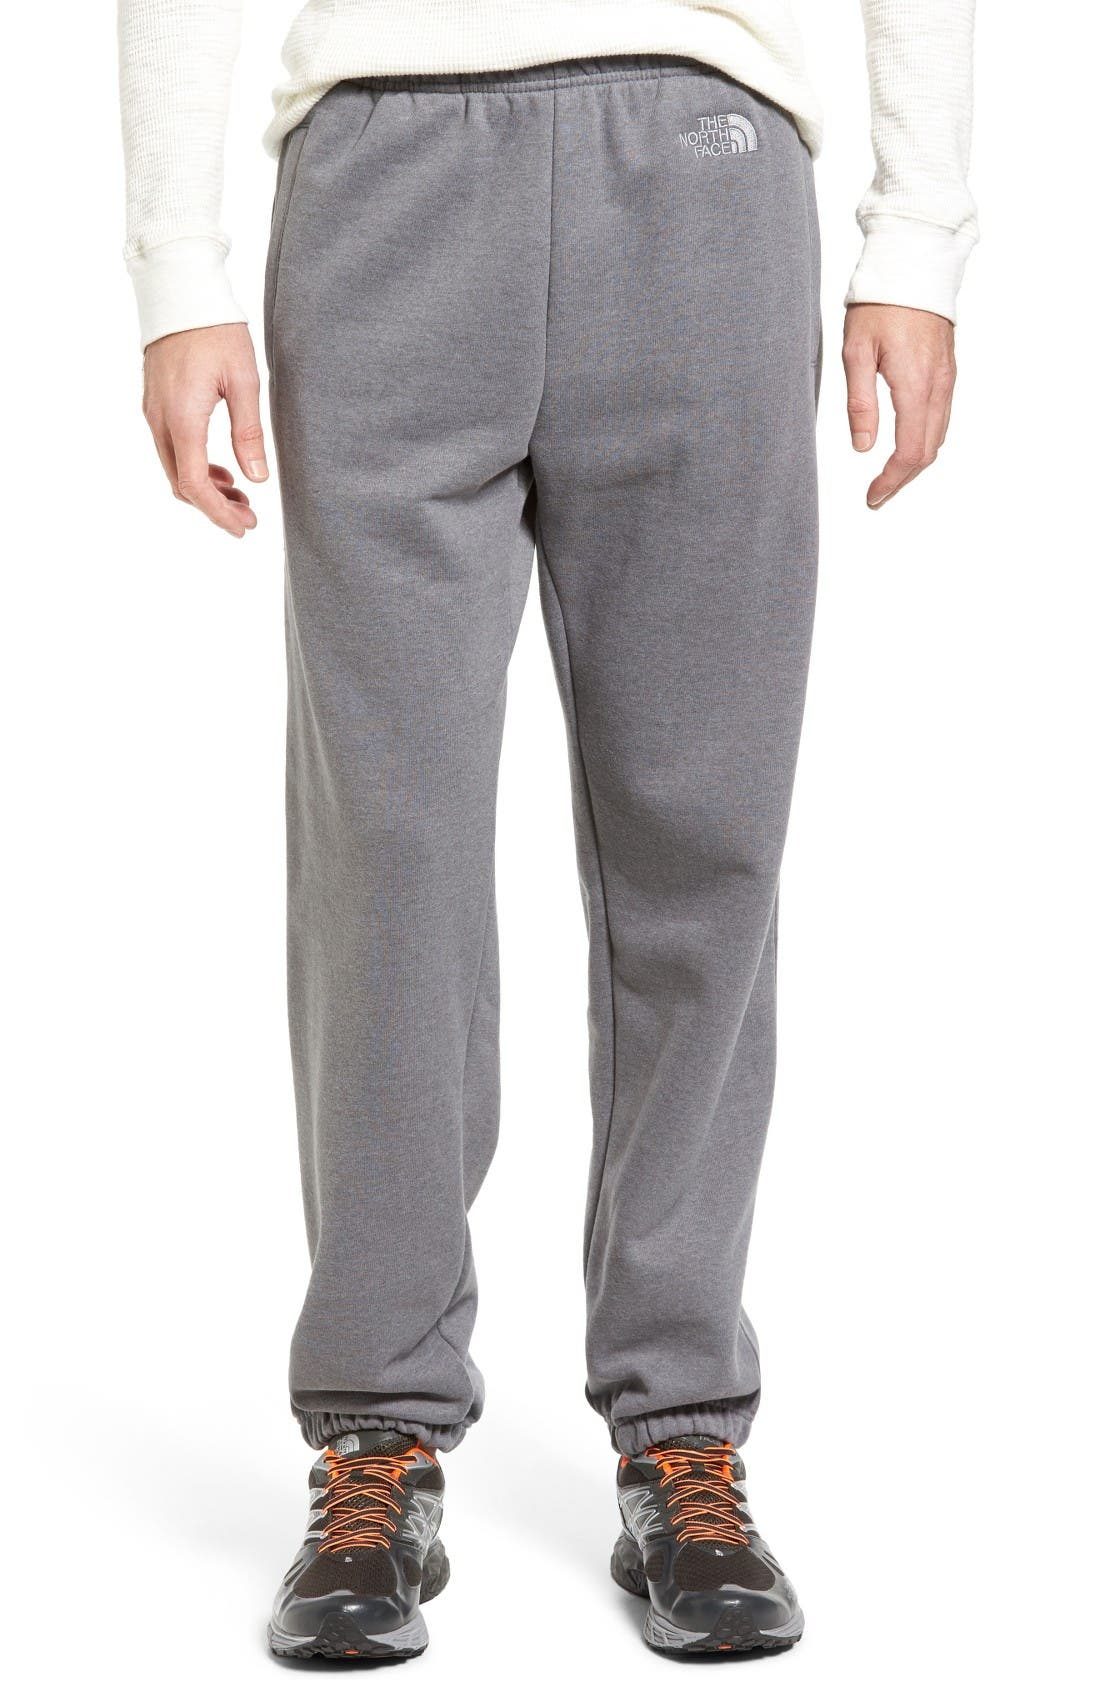 Alternate Image 1 Selected - The North Face 'Logo' Sweatpants